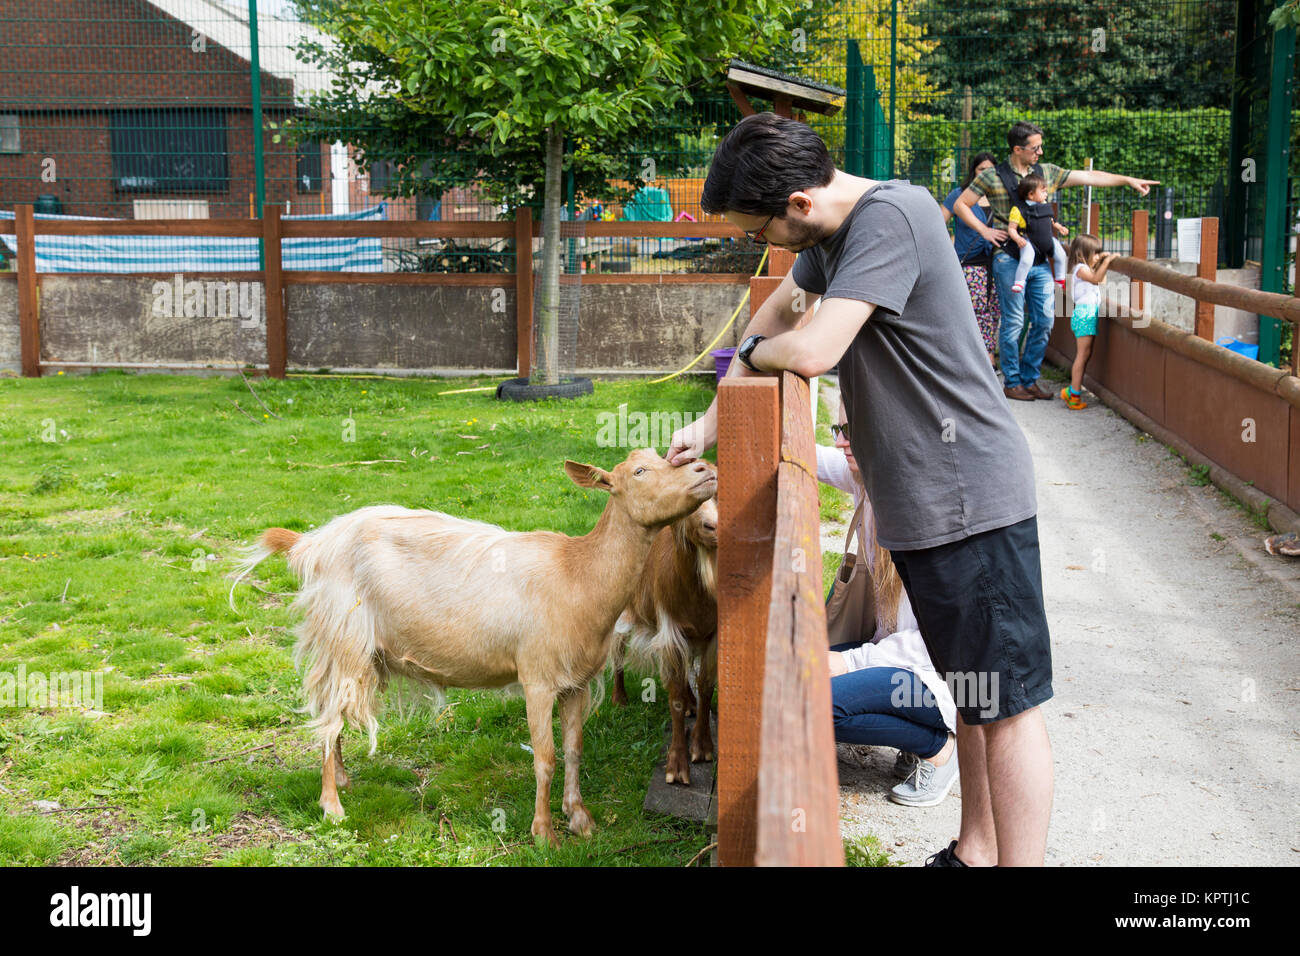 Young man stroking a goat inside an enclosure at Spitalfields City Farm, London, UK - Stock Image